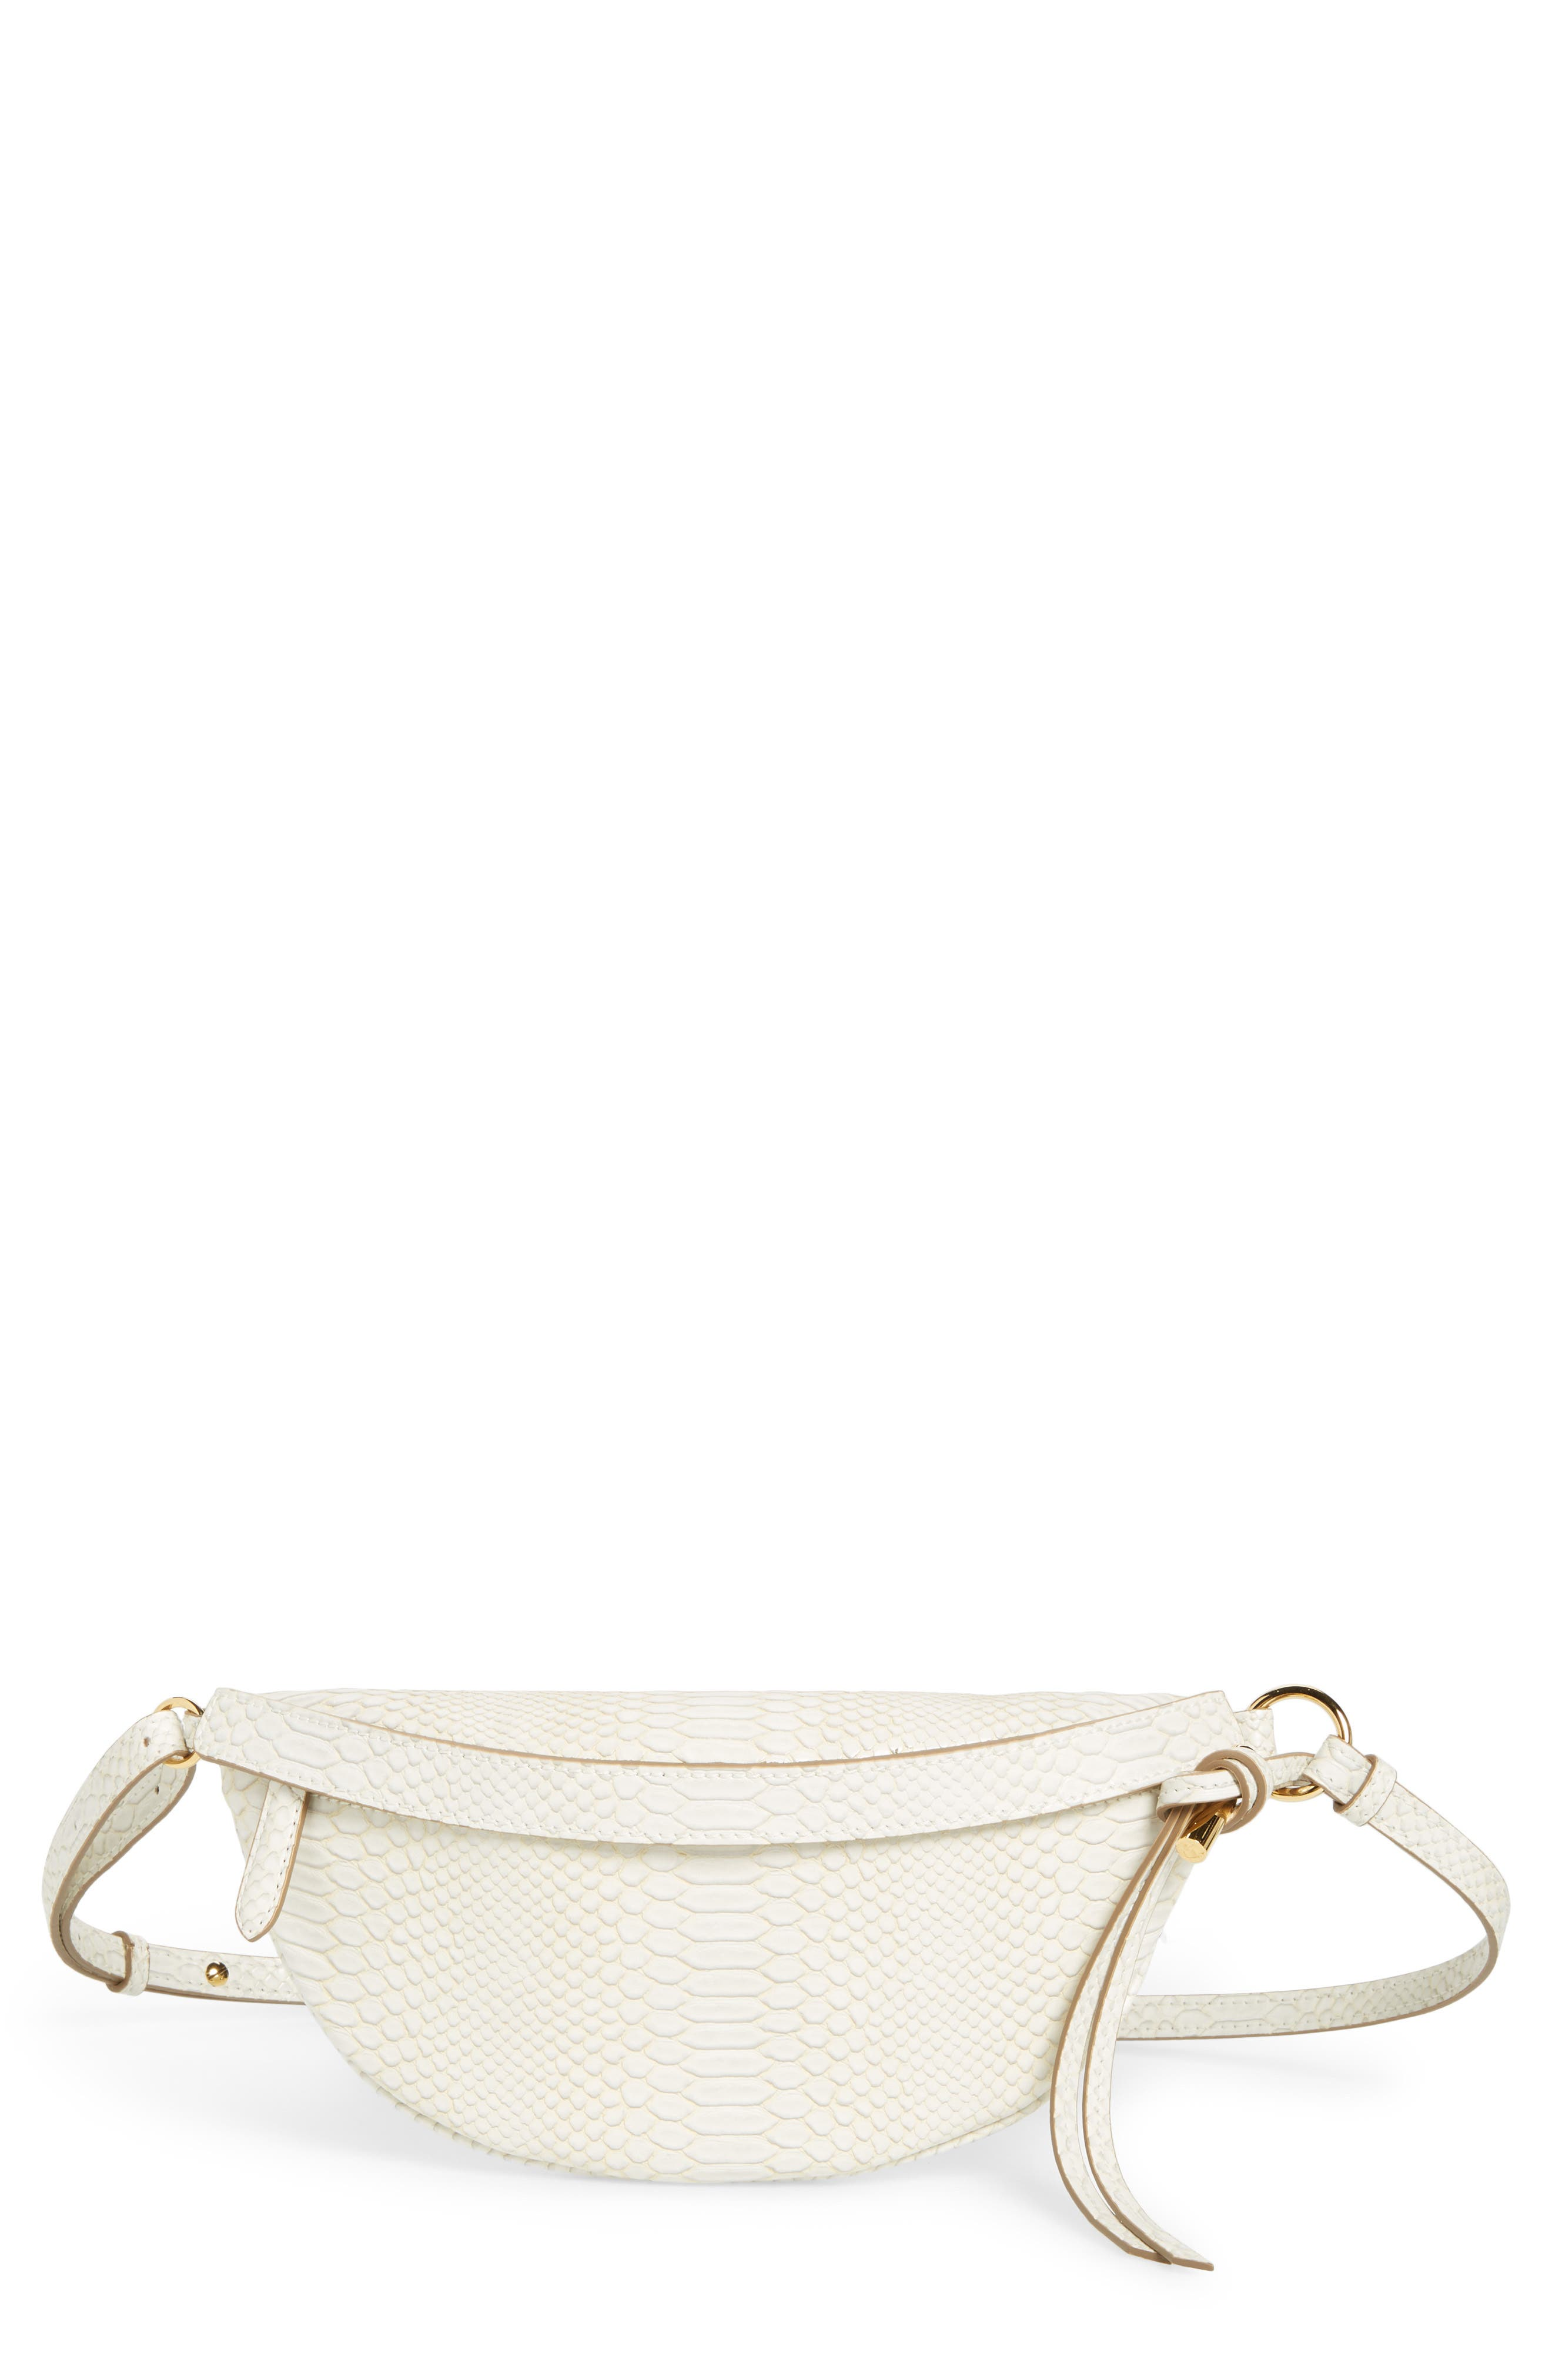 Alter Snake Faux Leather Fanny Pack,                             Main thumbnail 1, color,                             IVORY